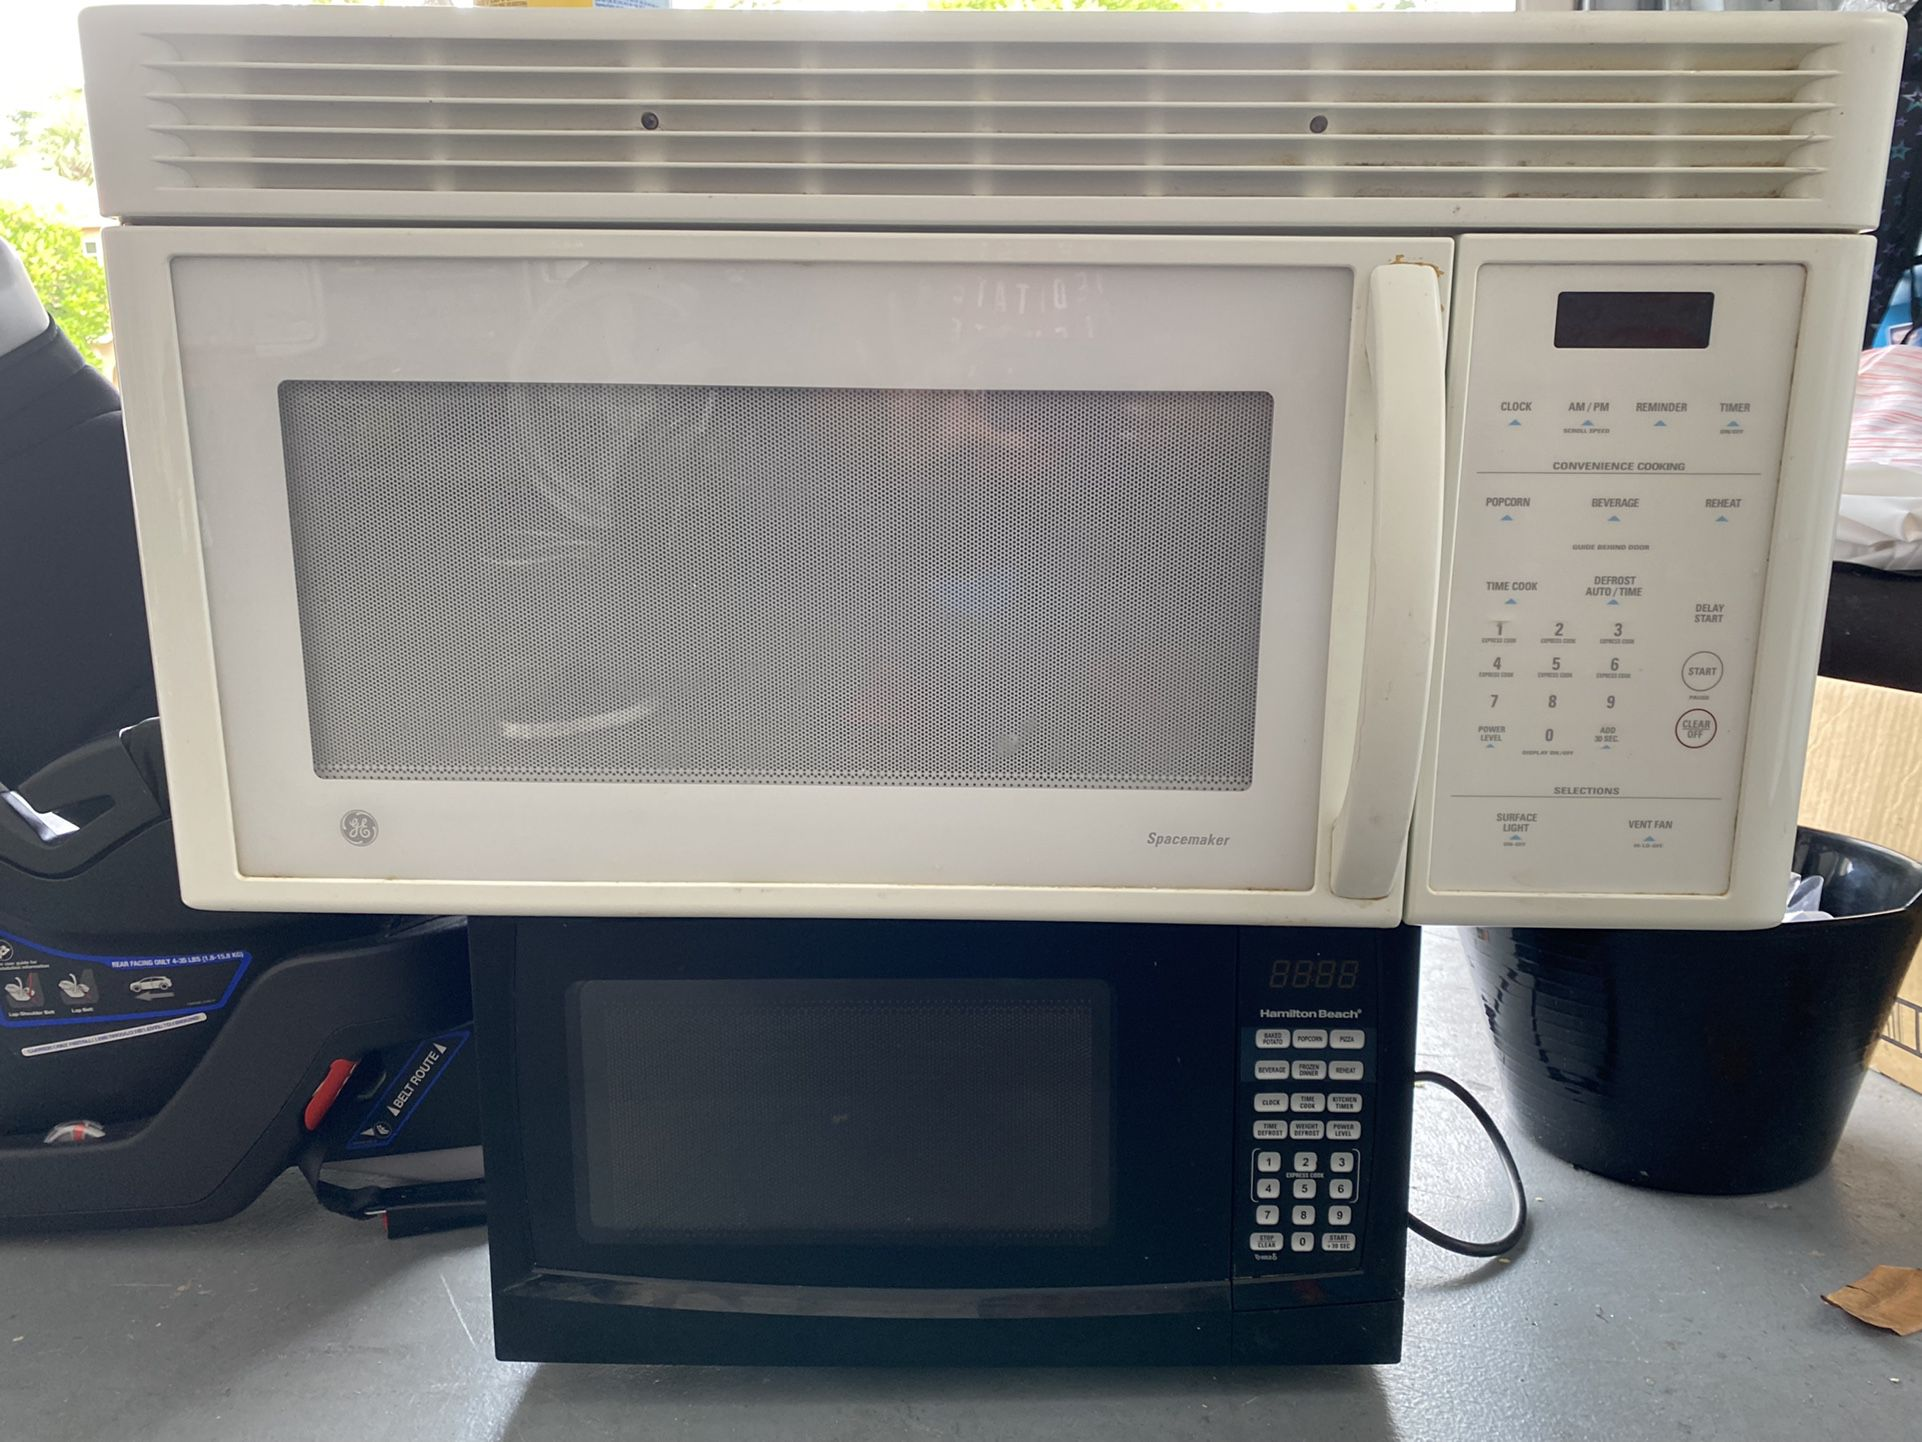 Oven, Dishwasher And Two Microwaves